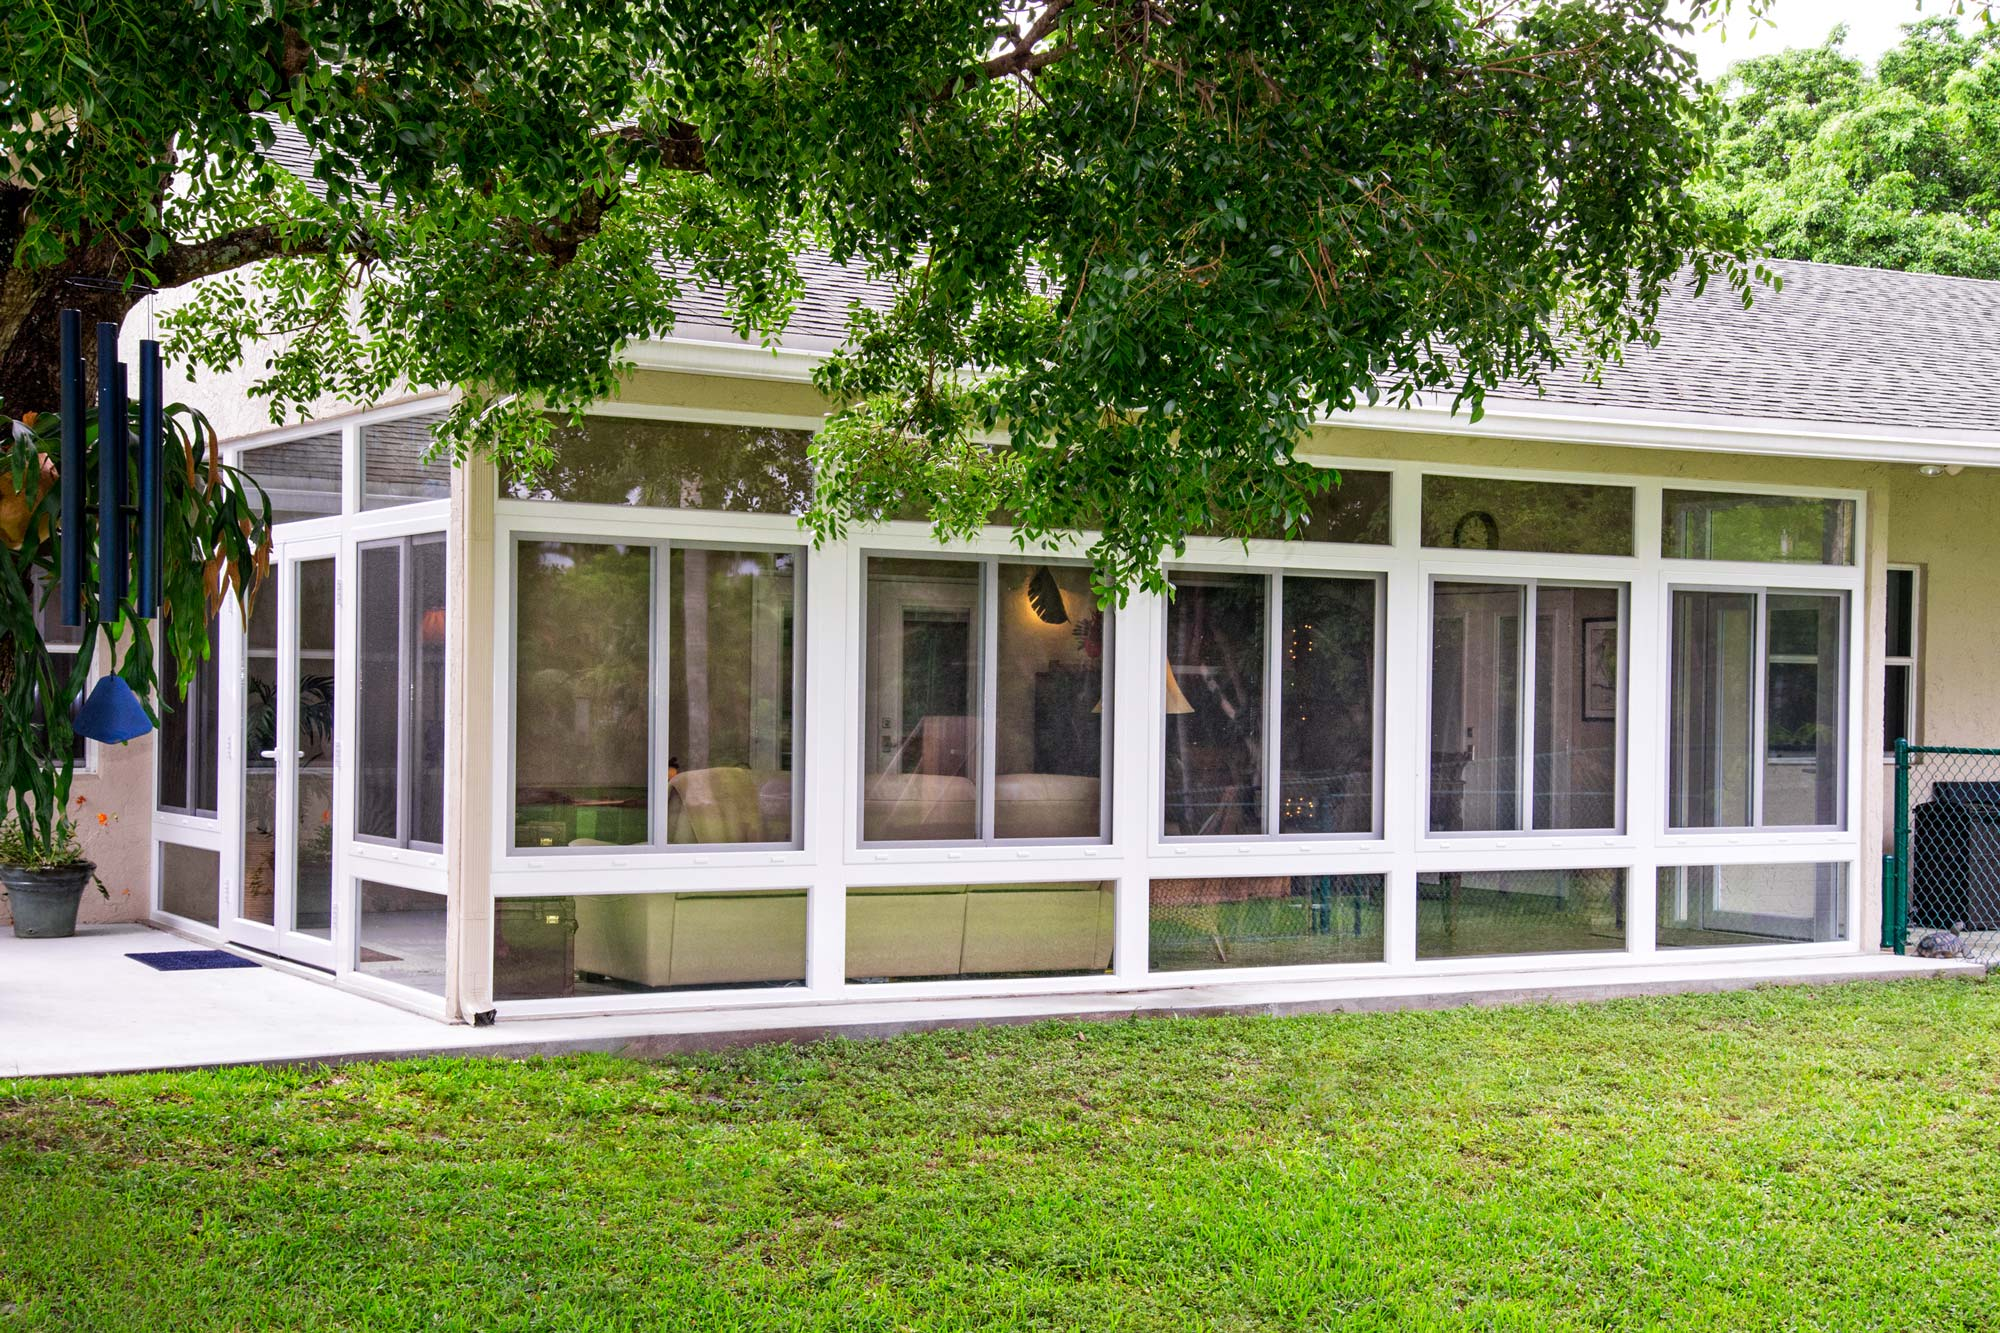 Exterior-View-of-an-Impact-Glass-Sunroom-Wall-System.